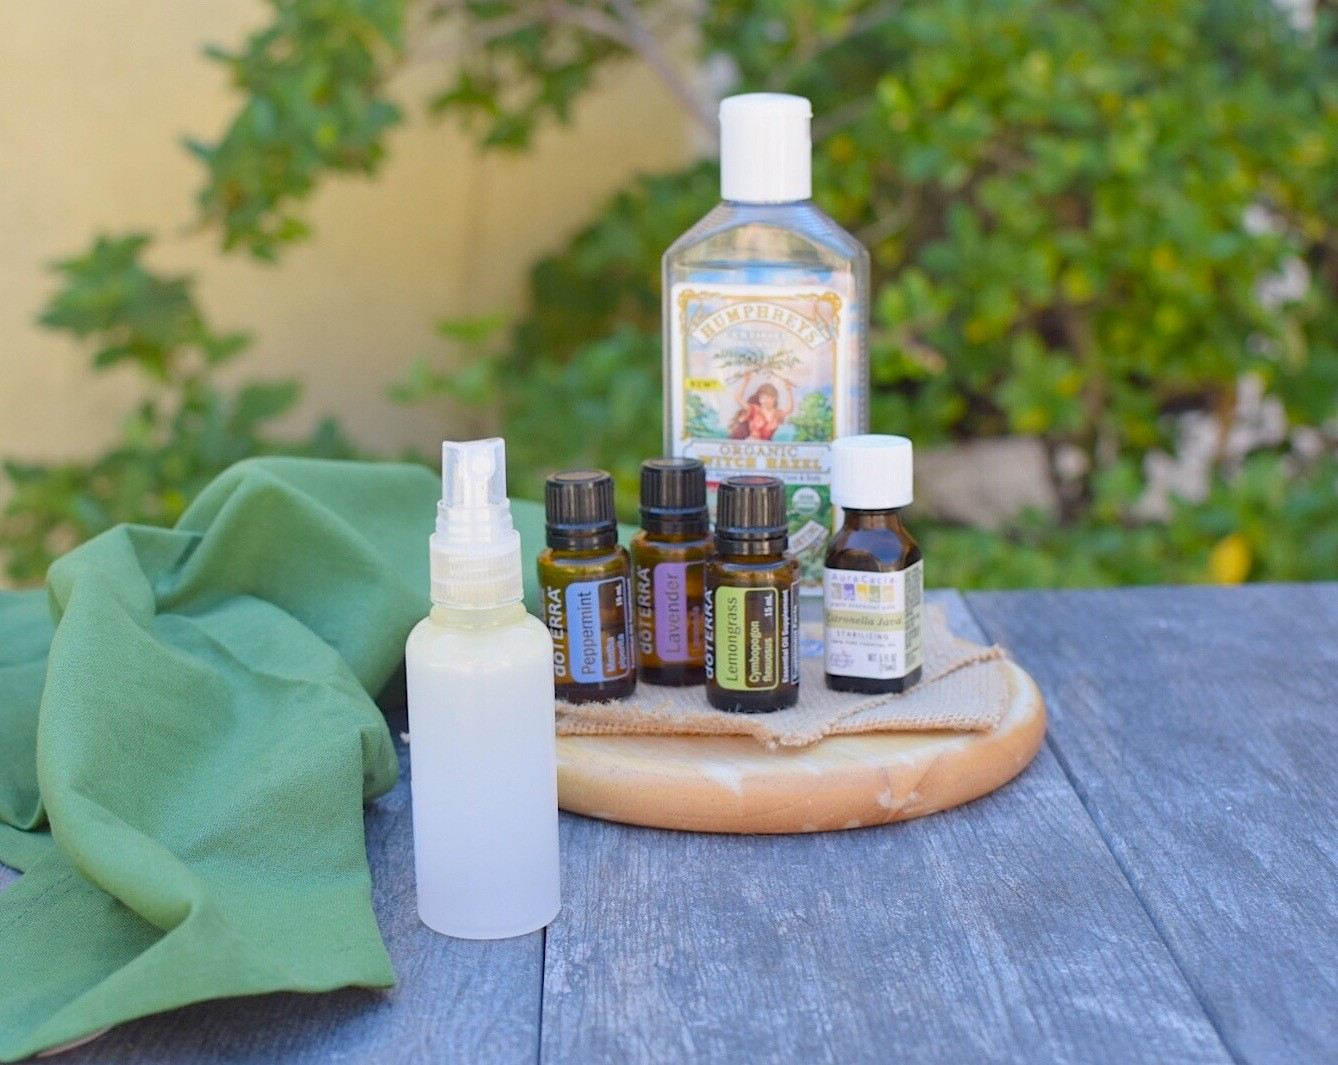 DIY Non-Toxic Bug Spray